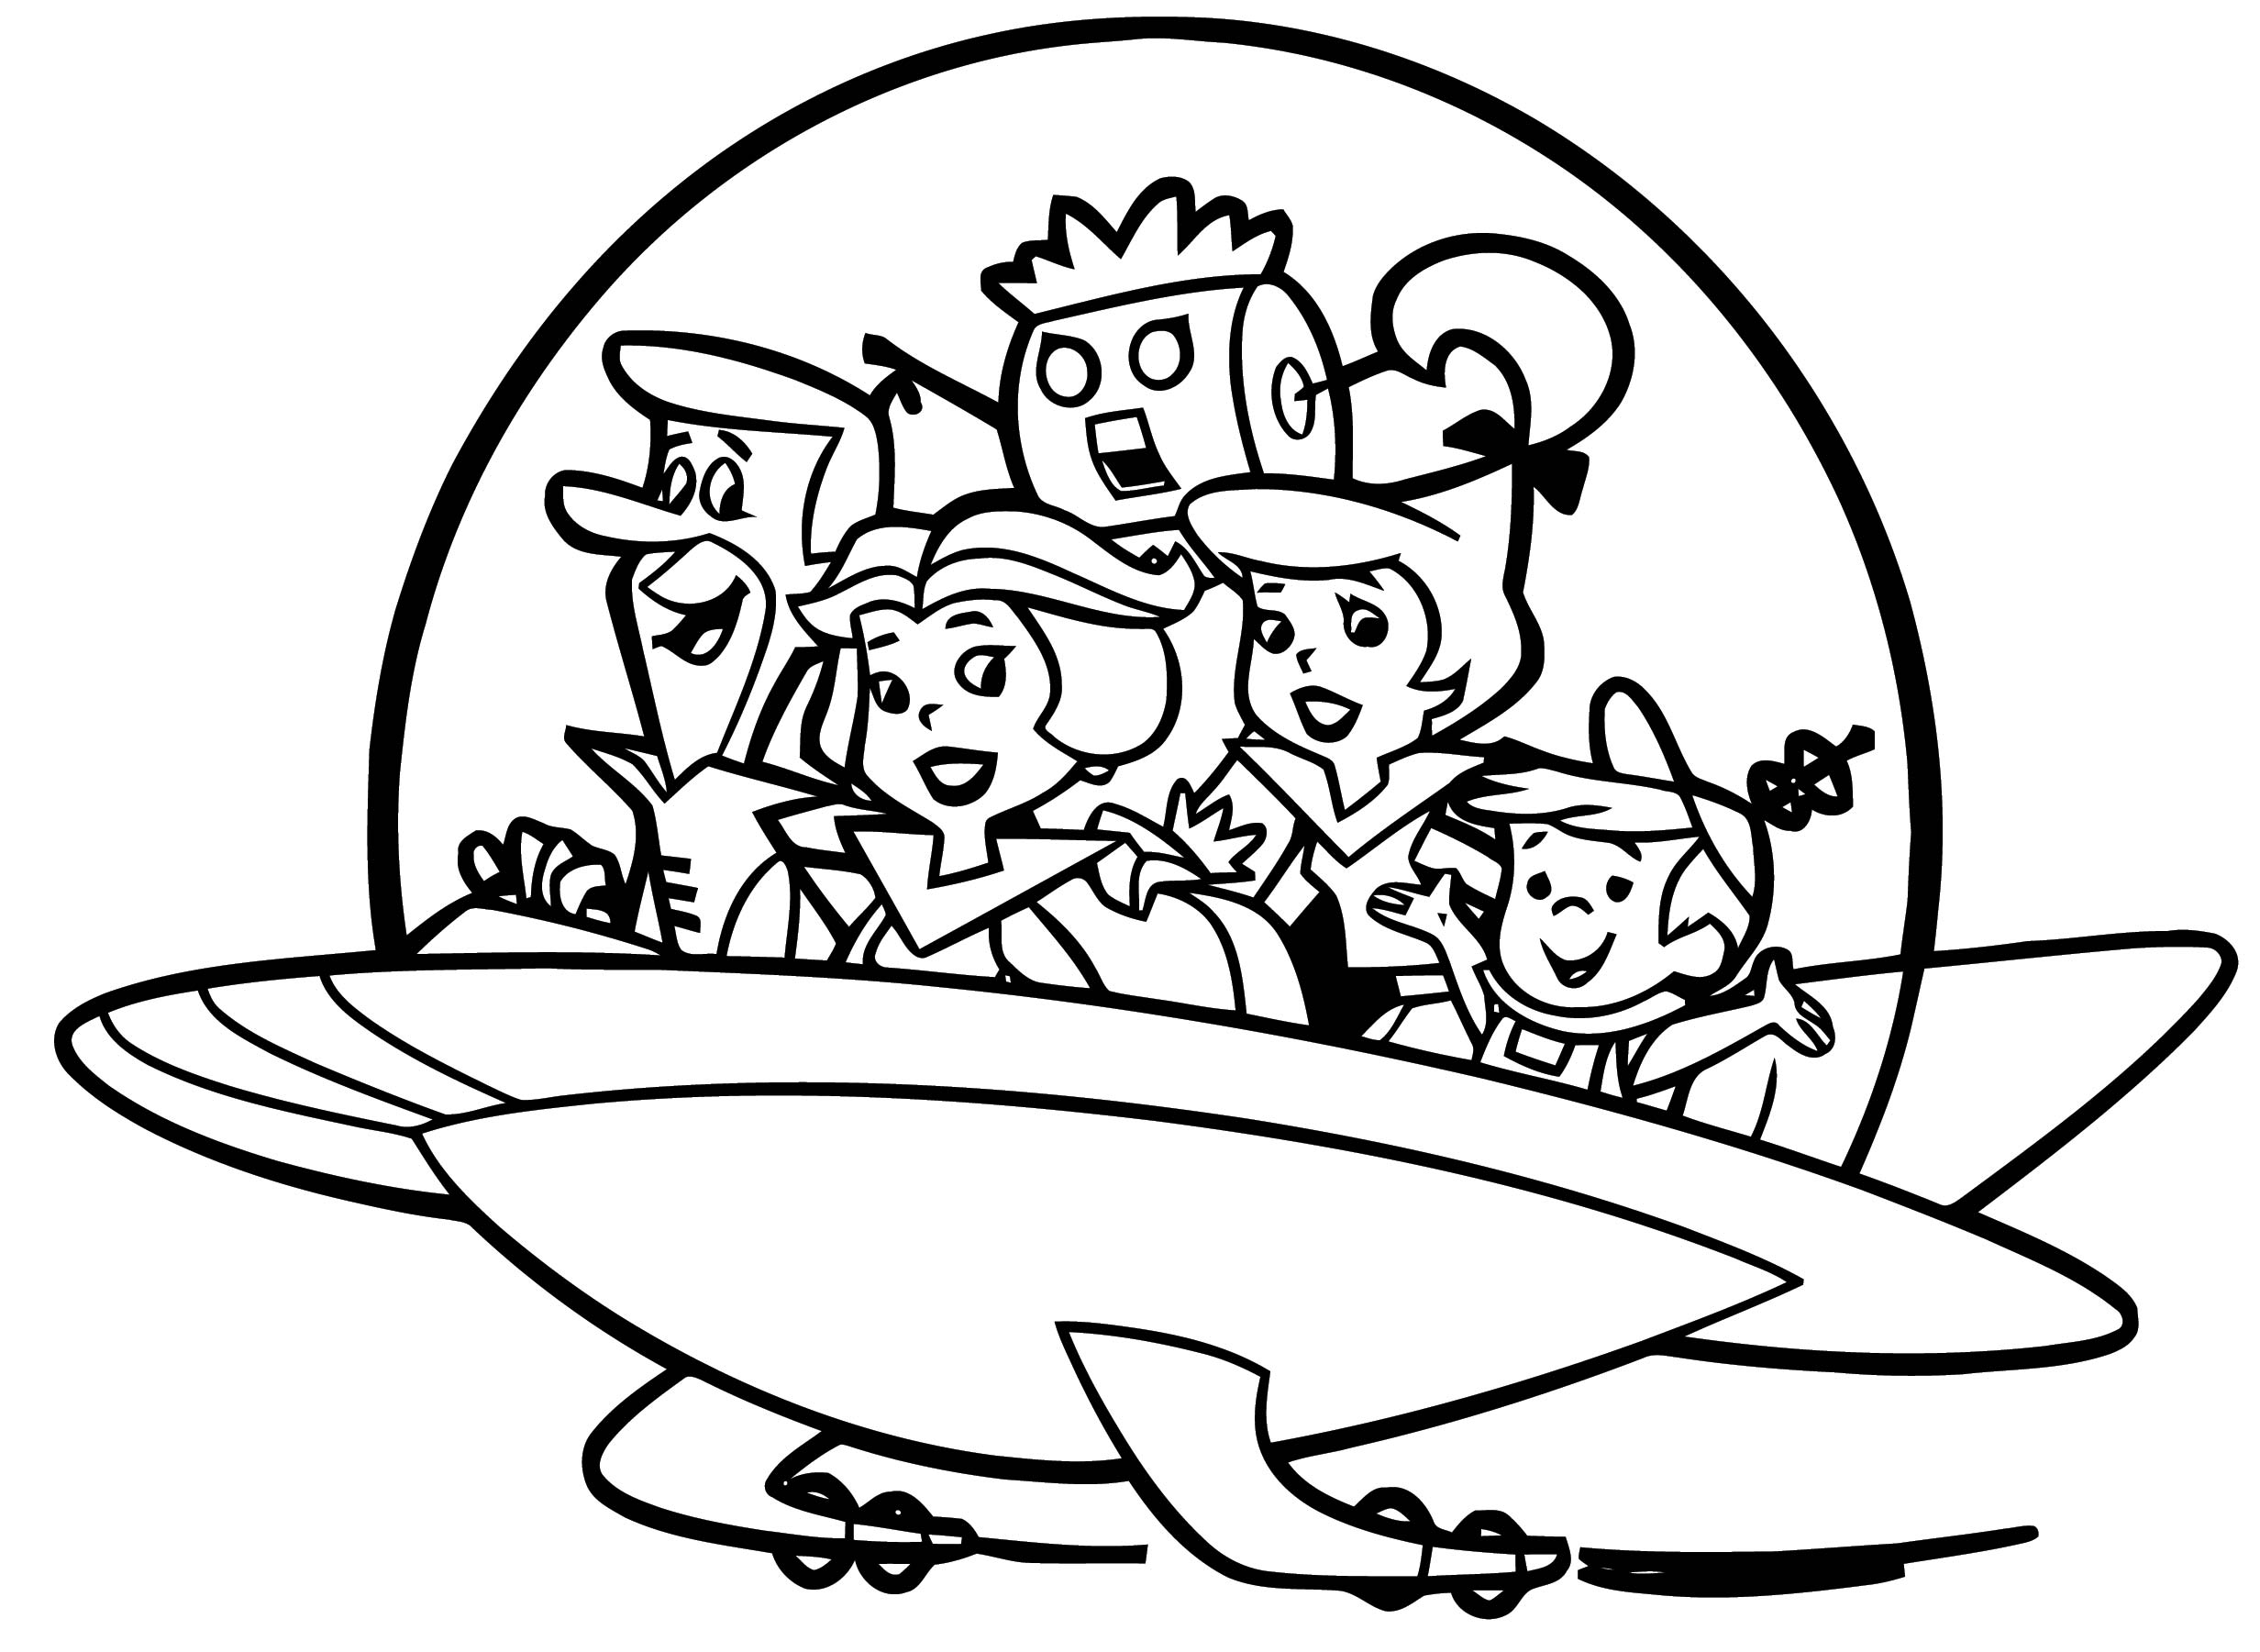 jetson coloring pages - photo#29